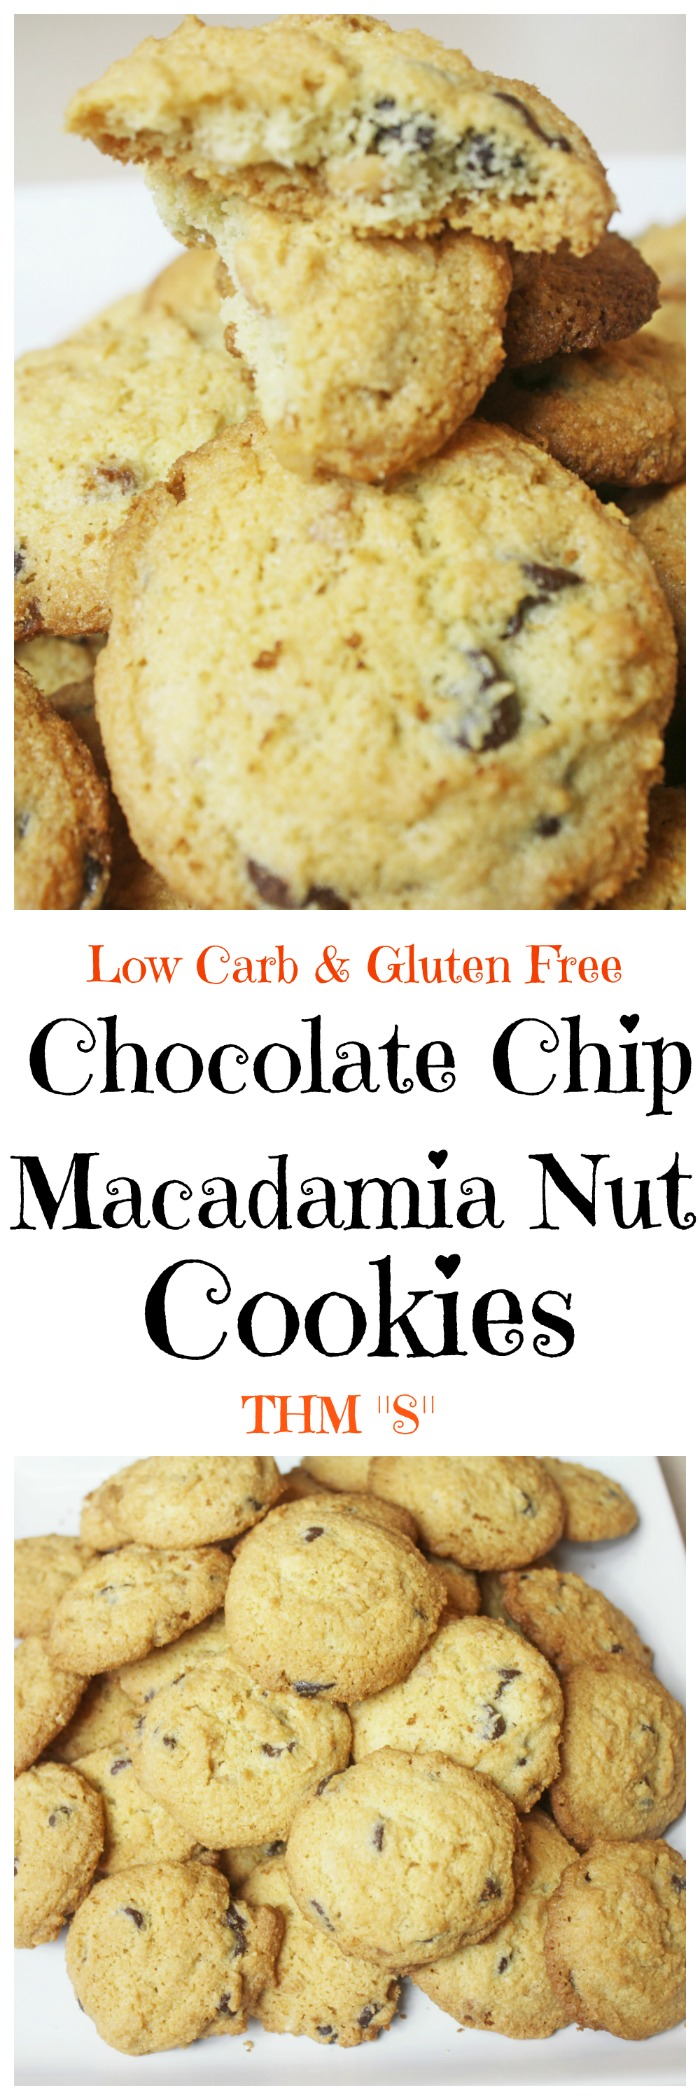 Chocolate Chip Macadamia Nut Cookies || Low Carb, Gluten Free, THM ...